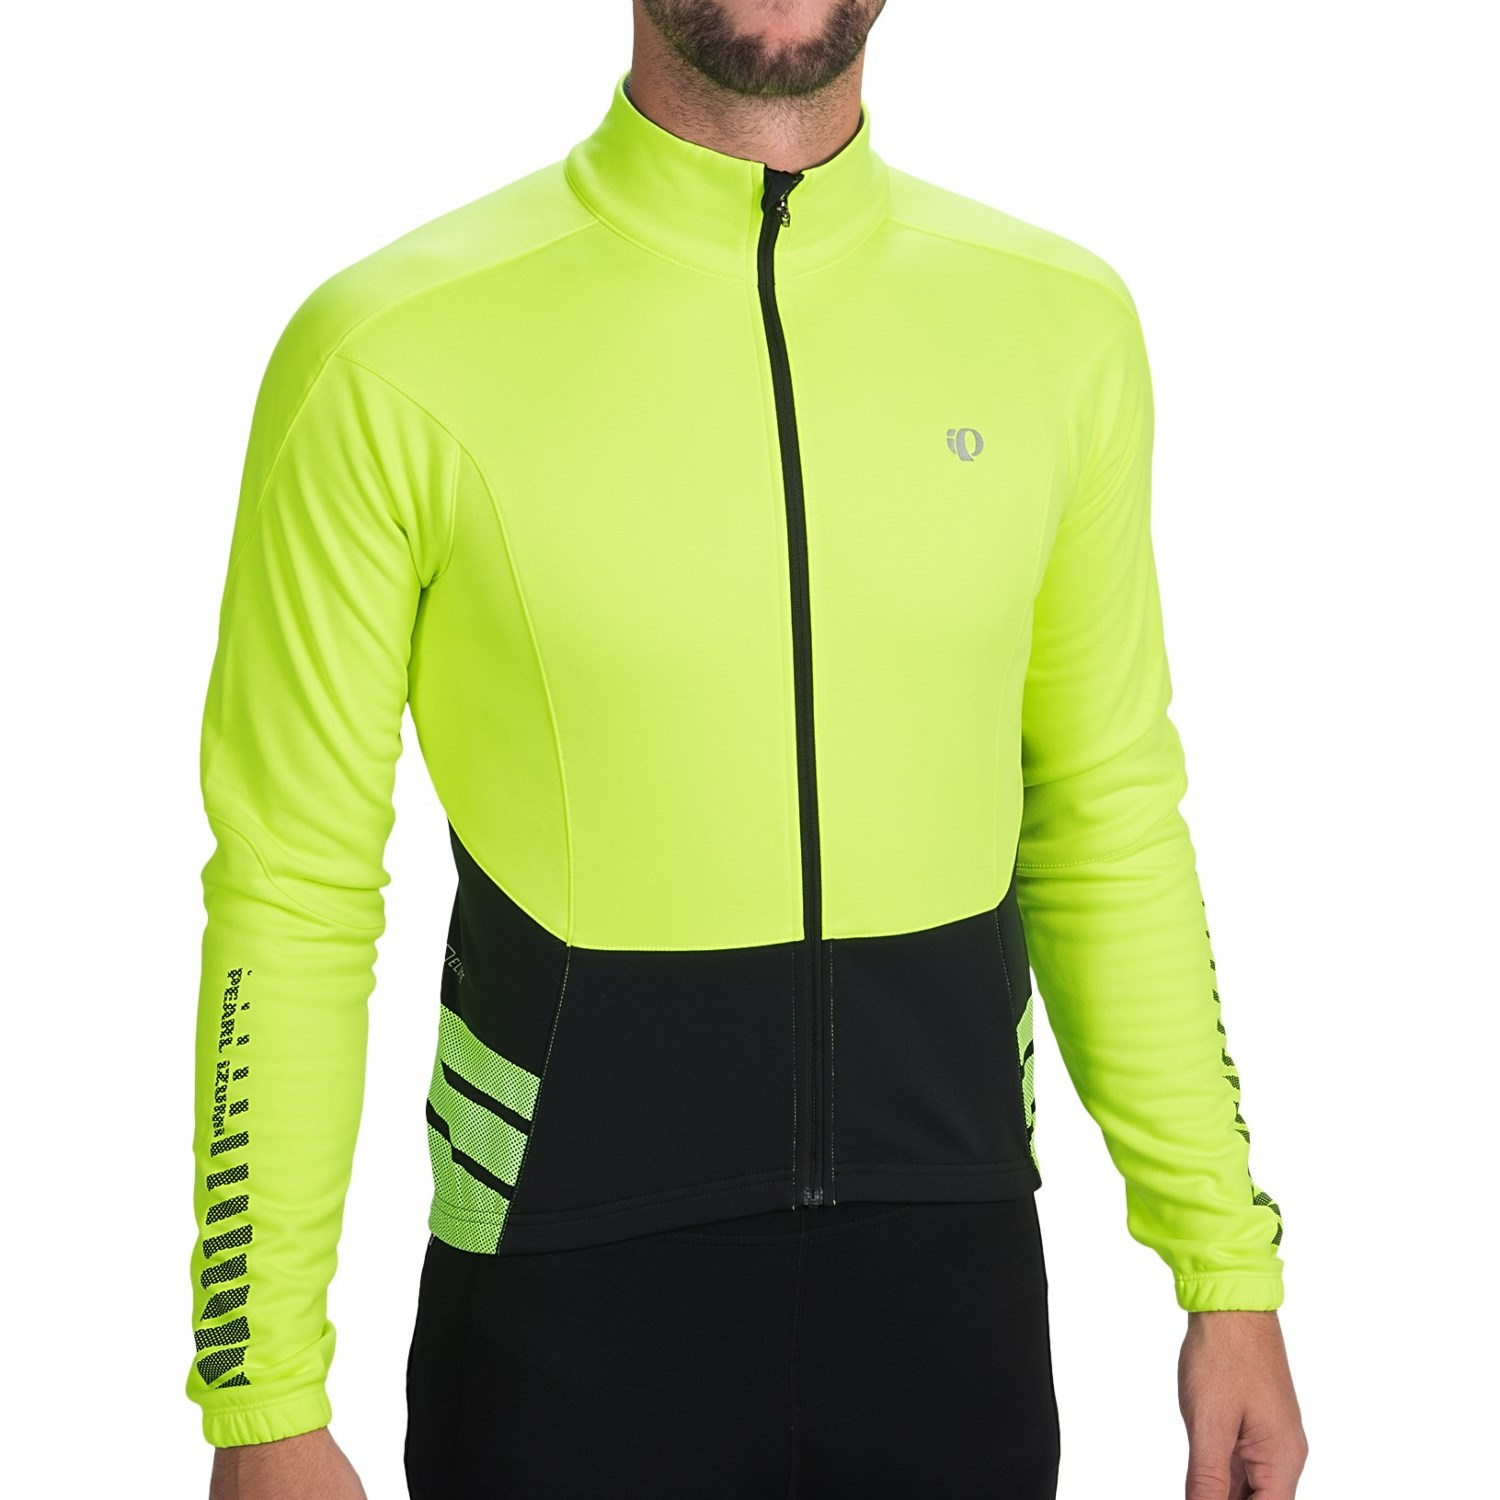 Pearl izumi elite thermal cycling jersey for men save 44 for Pearl izumi cycling shirt